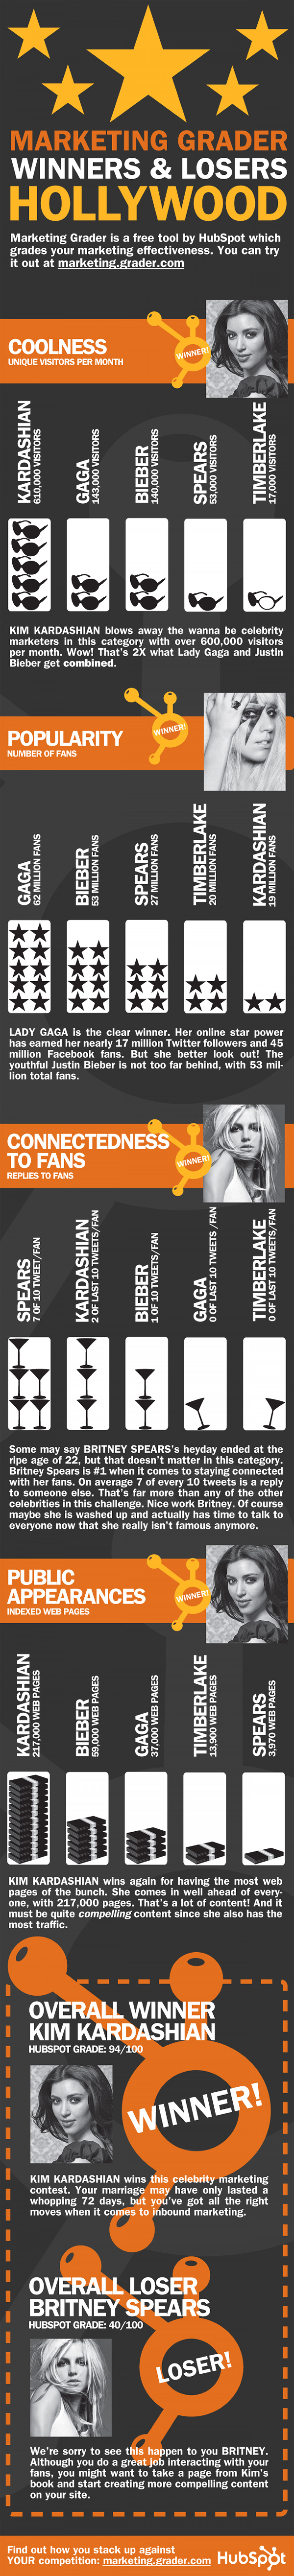 Marketing Grader - Hollywood Winners & Losers Infographic